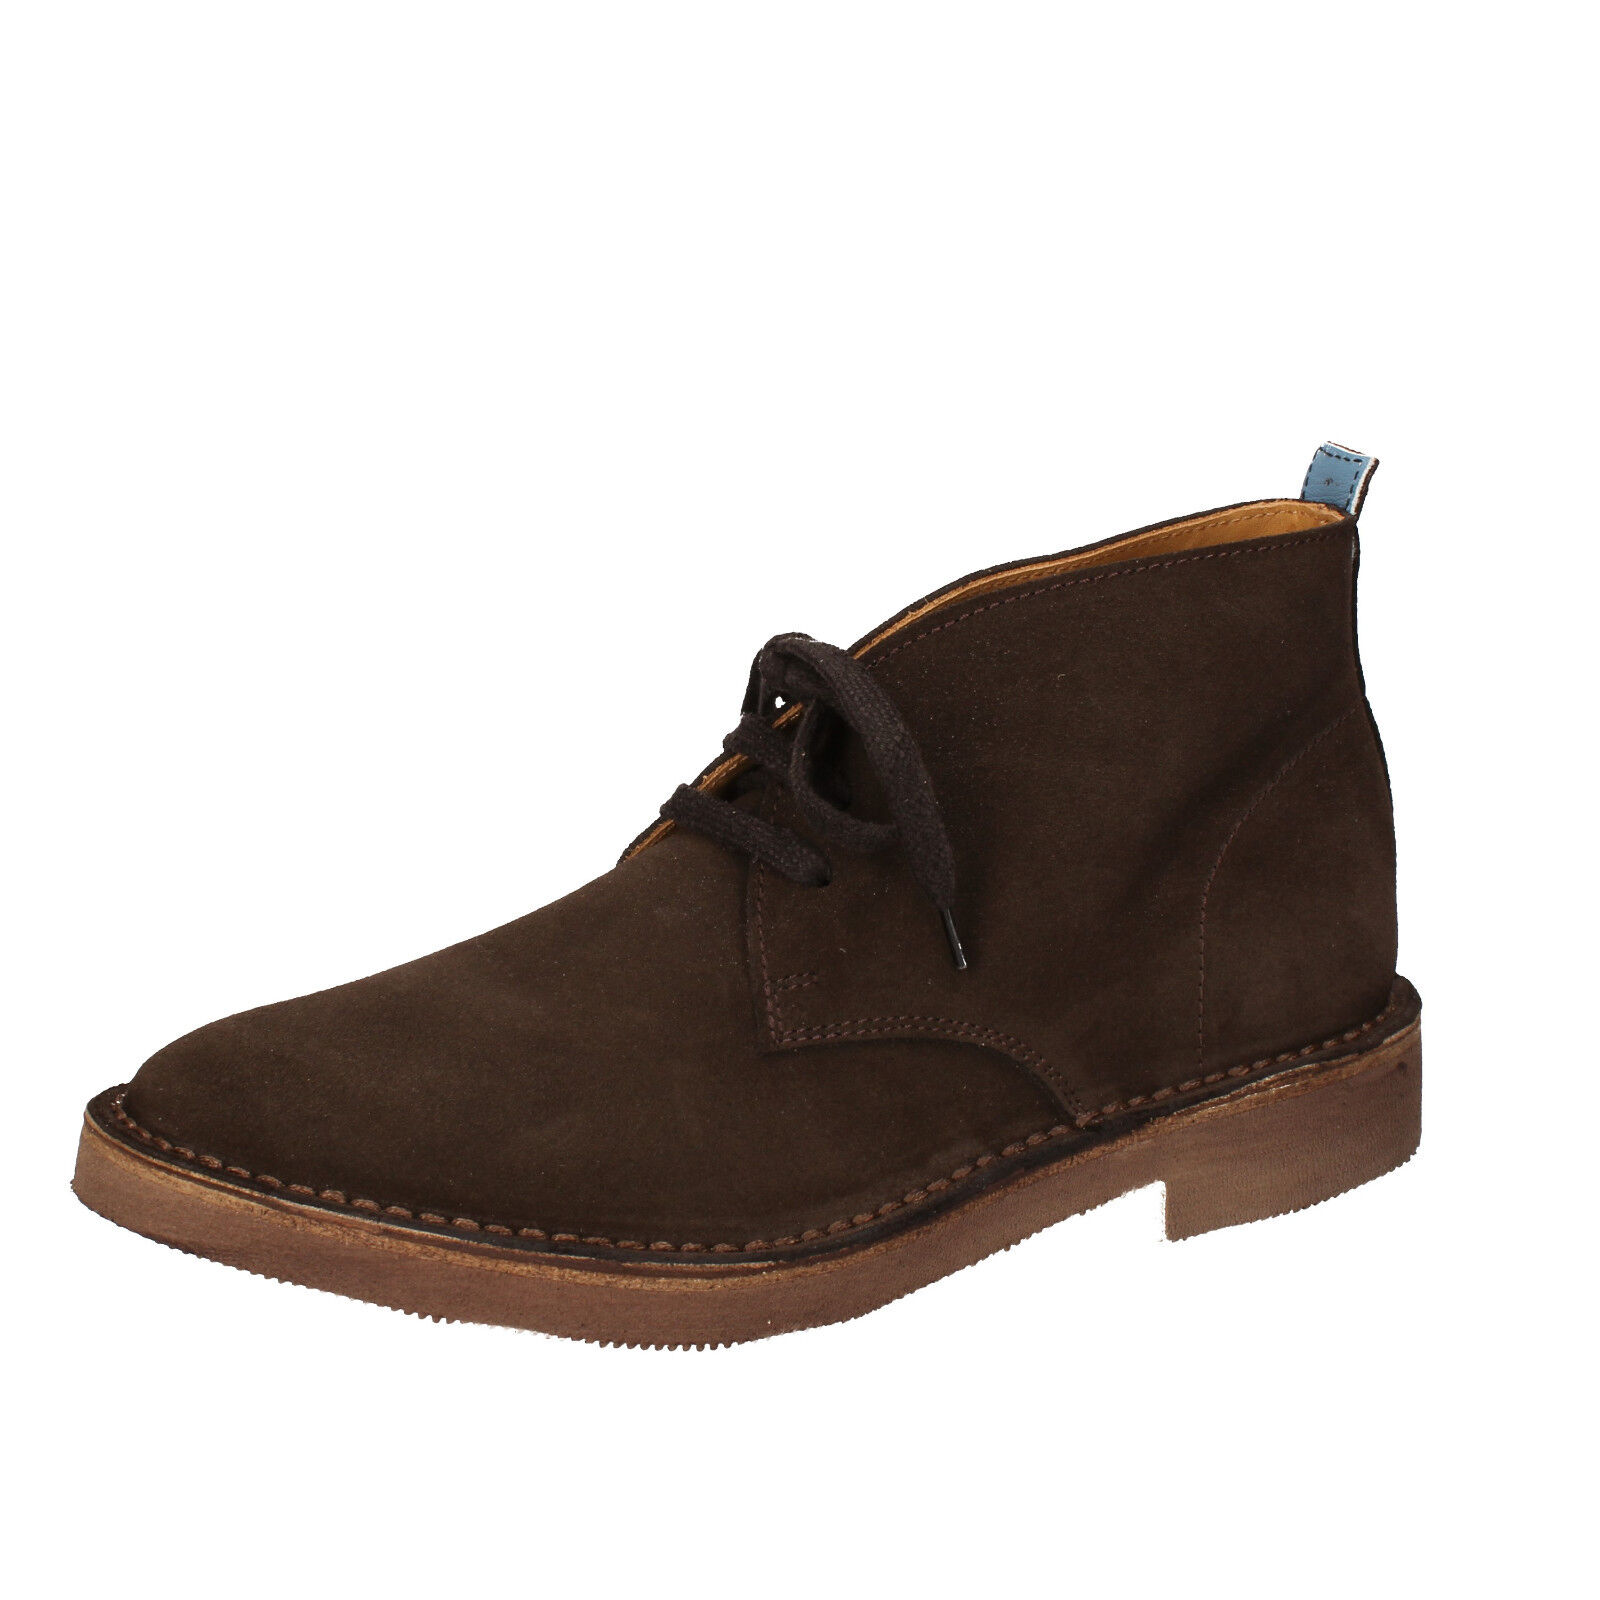 Mens shoes MOMA 9 () desert boots brown suede AB331-F